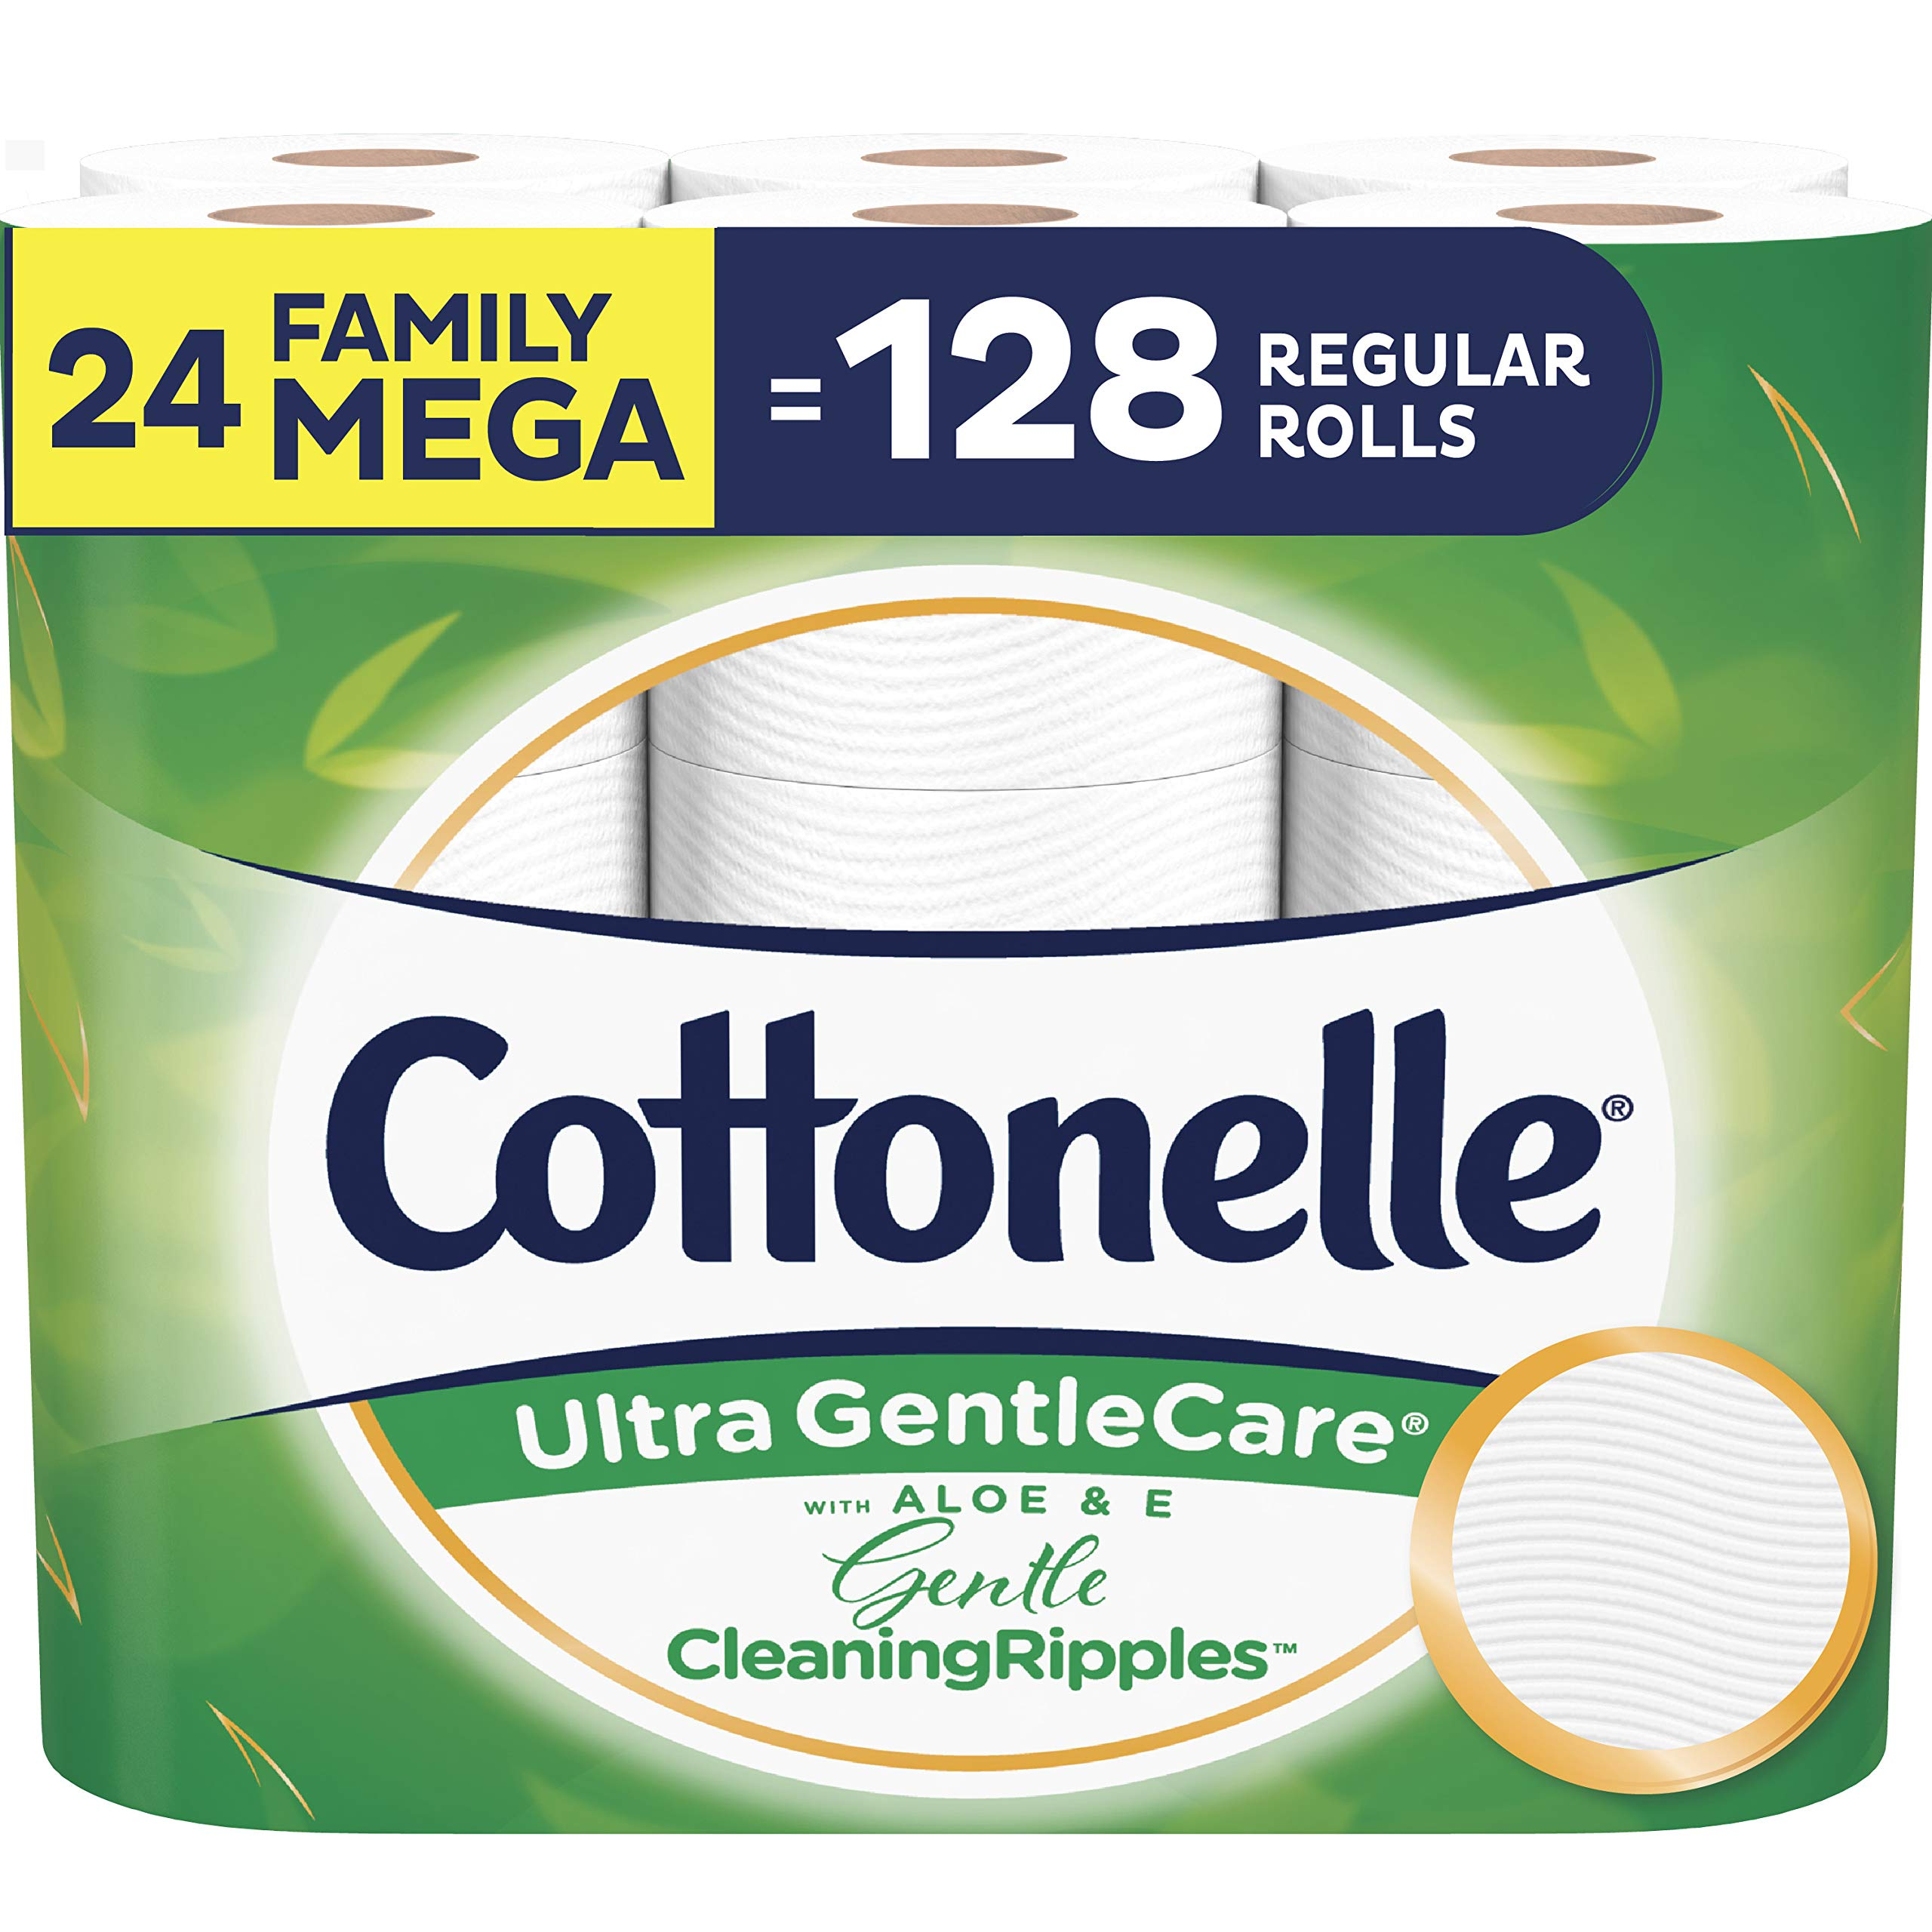 Cottonelle Ultra GentleCare Toilet Paper with Gentle CleaningRipples, 24 Family Mega Rolls, Sensitive Bath Tissue with Aloe & Vitamin E by Cottonelle